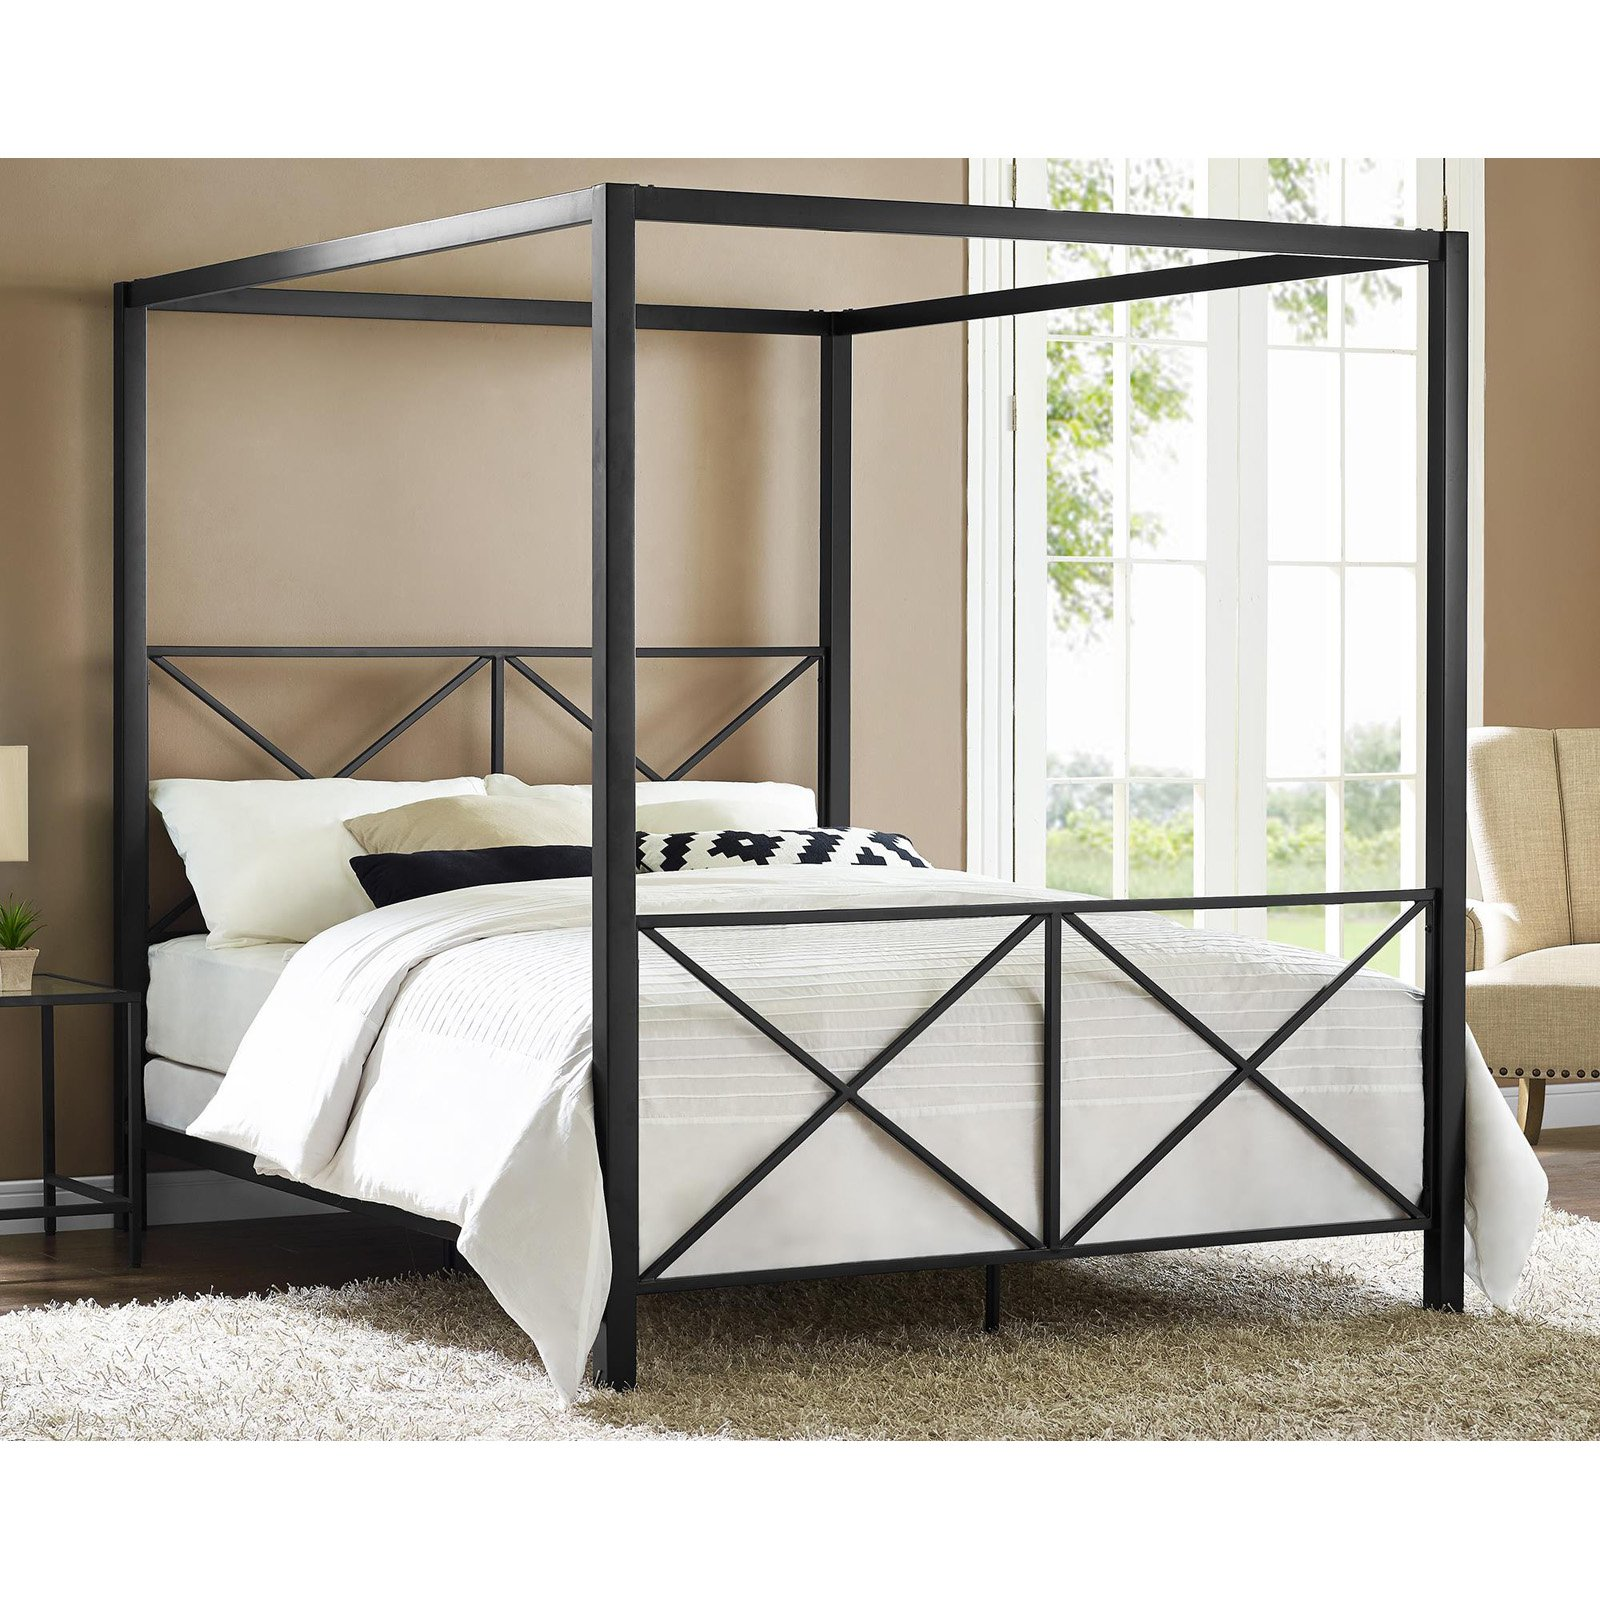 Wonderful DHP Rosedale Metal Canopy Bed Frame, Queen Size, Multiple Colors    Walmart.com